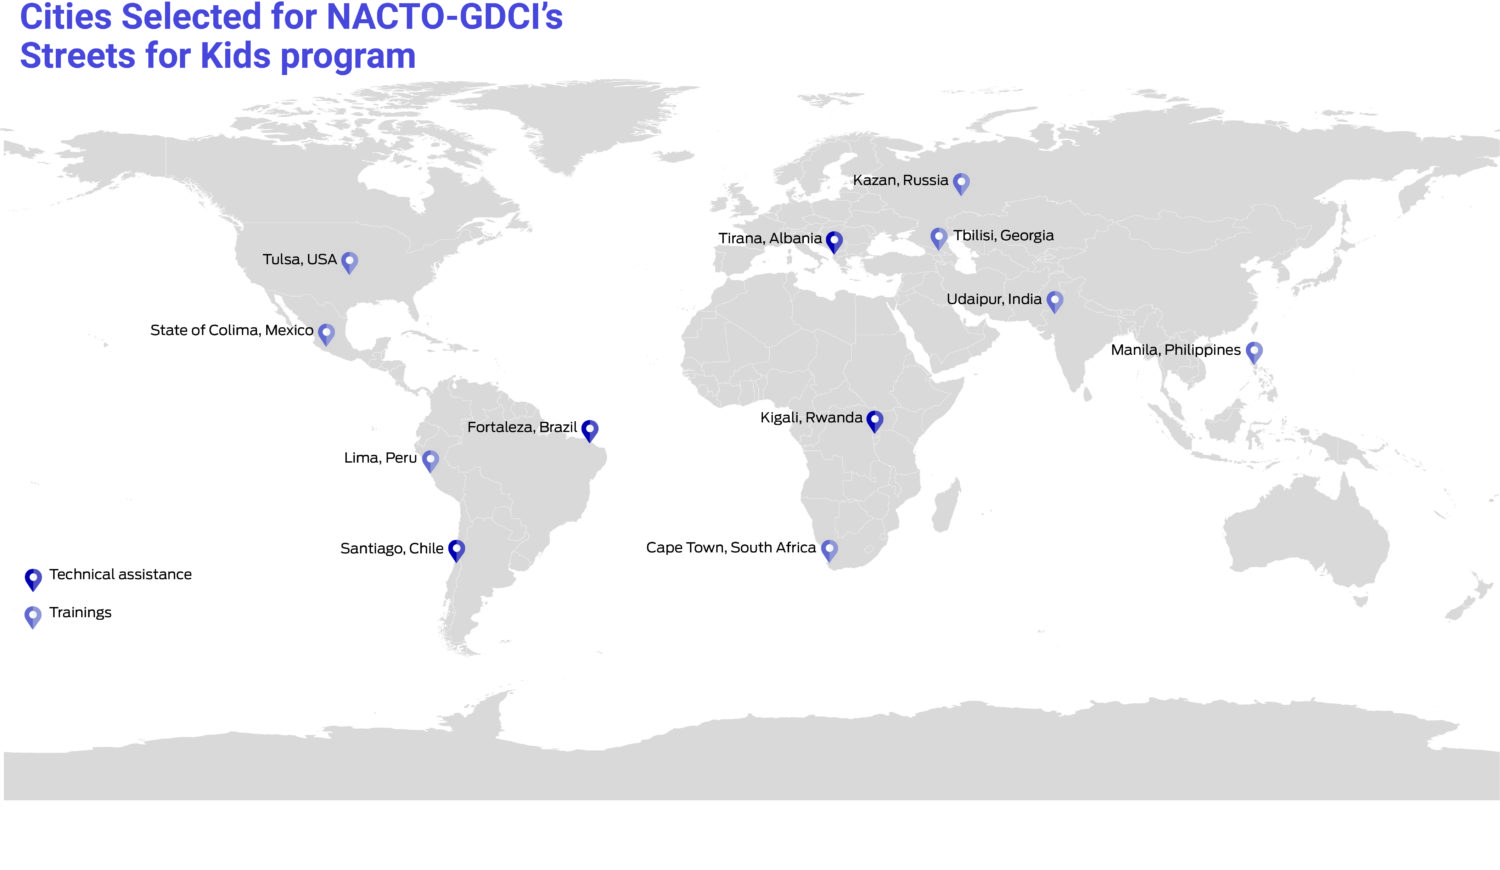 Map of the world highlighting the twelve cities selected under the Streets for Kids initiative